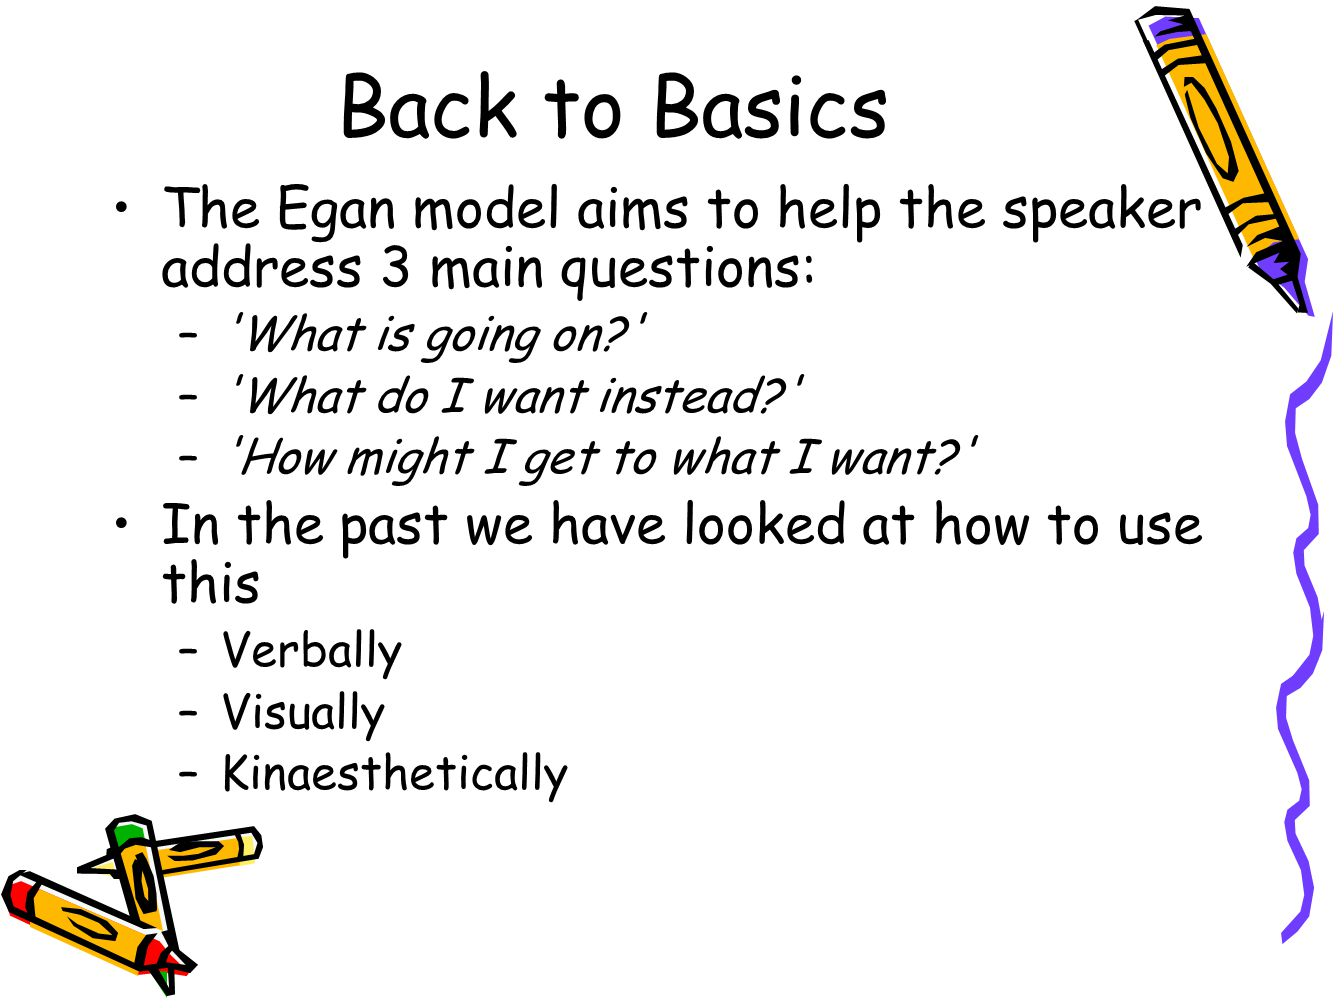 Back to Basics The Egan model aims to help the speaker address 3 main questions: – What is going on? – What do I want instead? – How might I get to what I want? In the past we have looked at how to use this –Verbally –Visually –Kinaesthetically